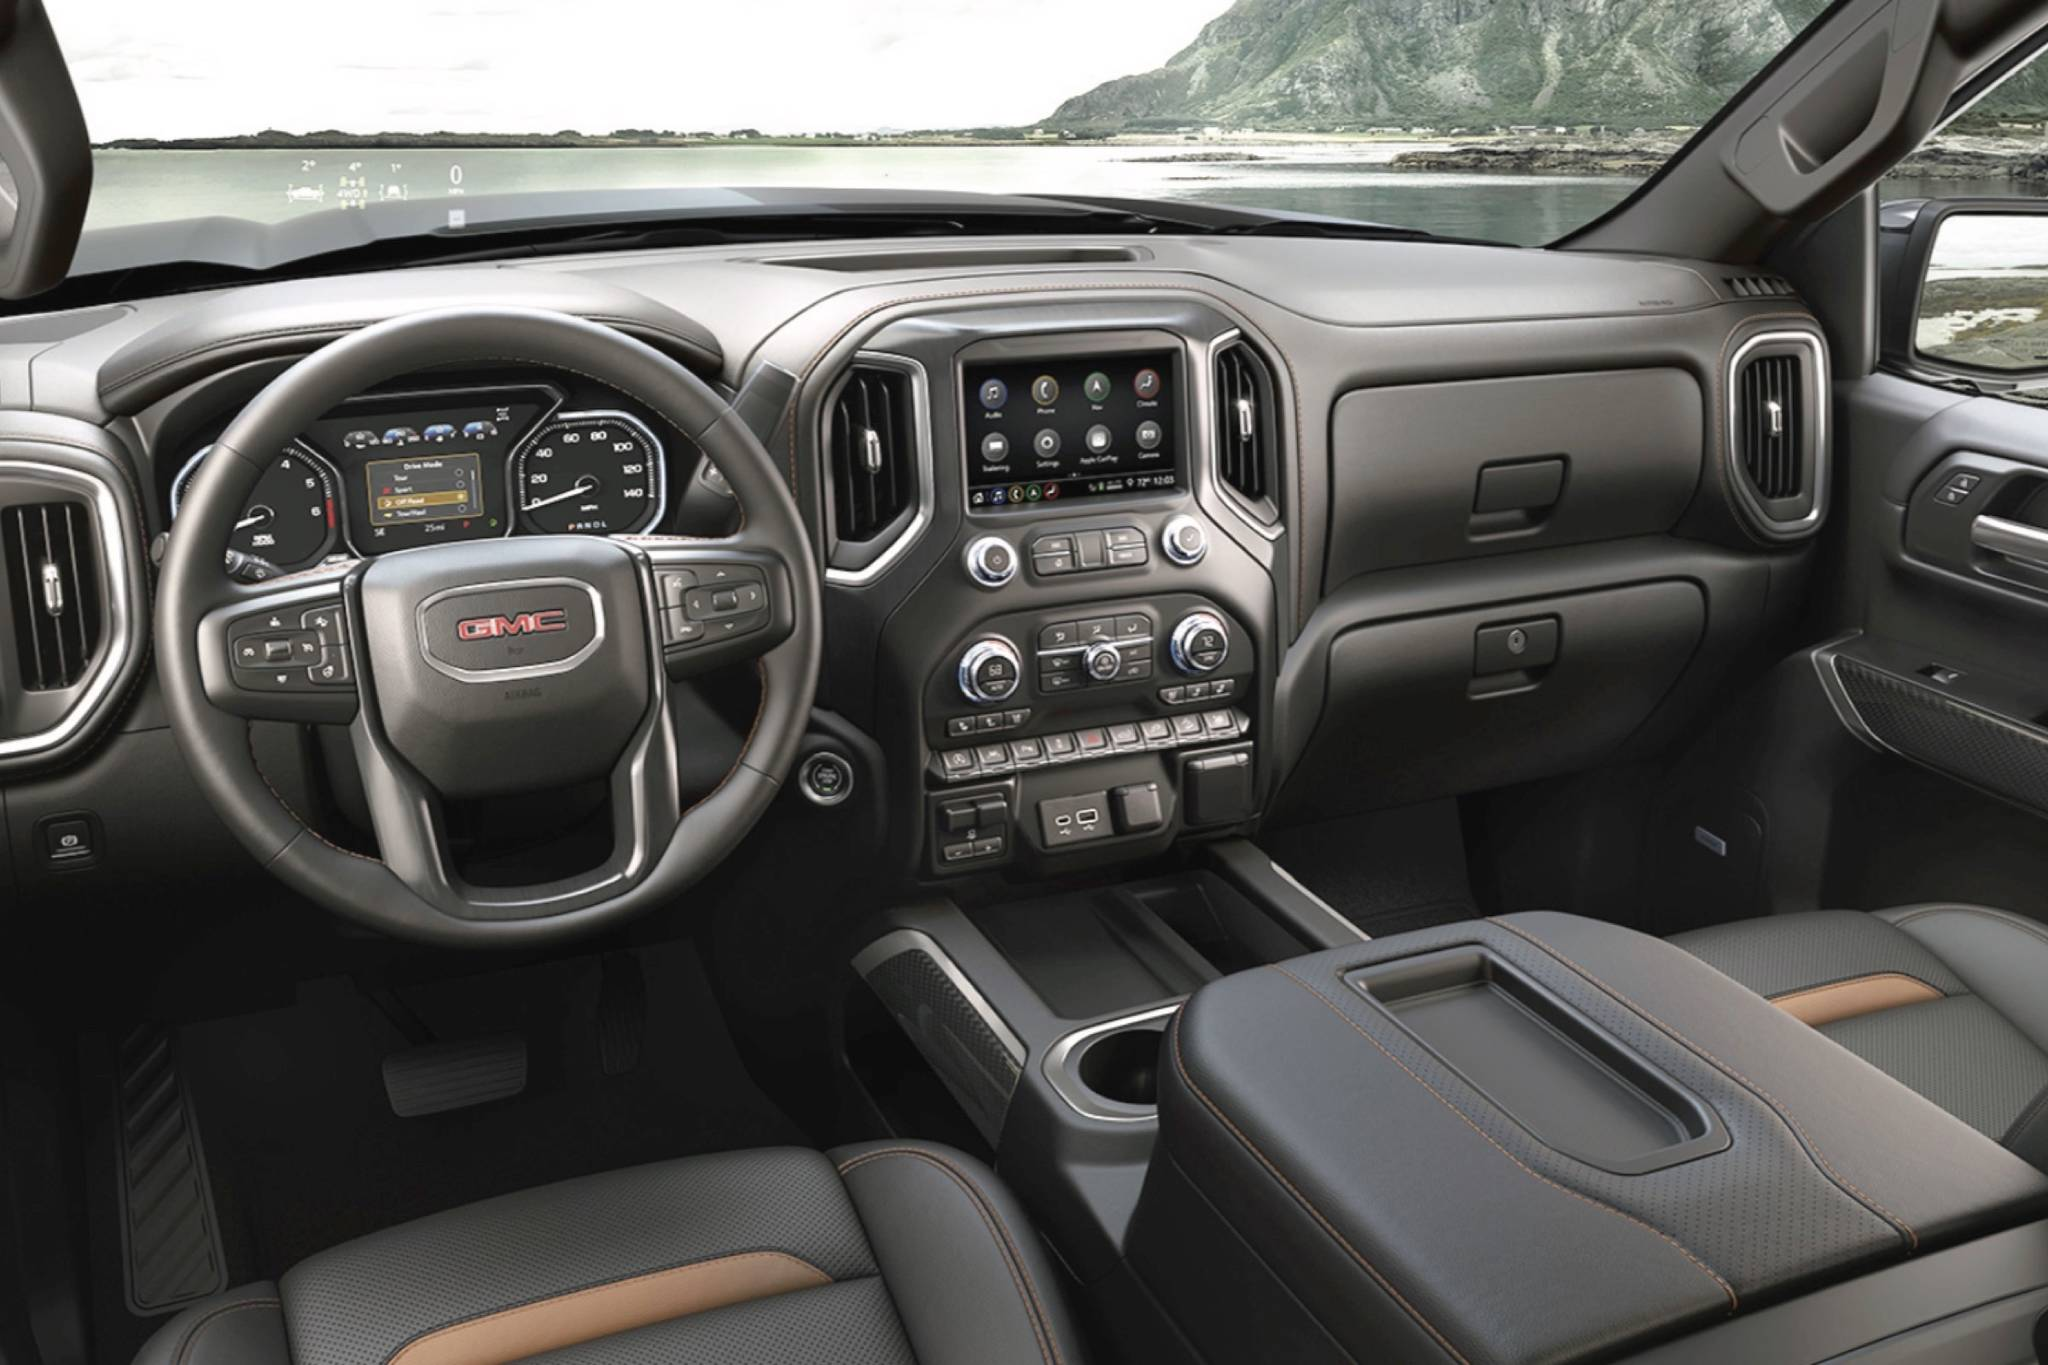 Bear in mind that this is the interior of a hard-working pickup truck. The top-end Denali model brings the kind of refinement that's normally found in a luxury car. PHOTO: GMC